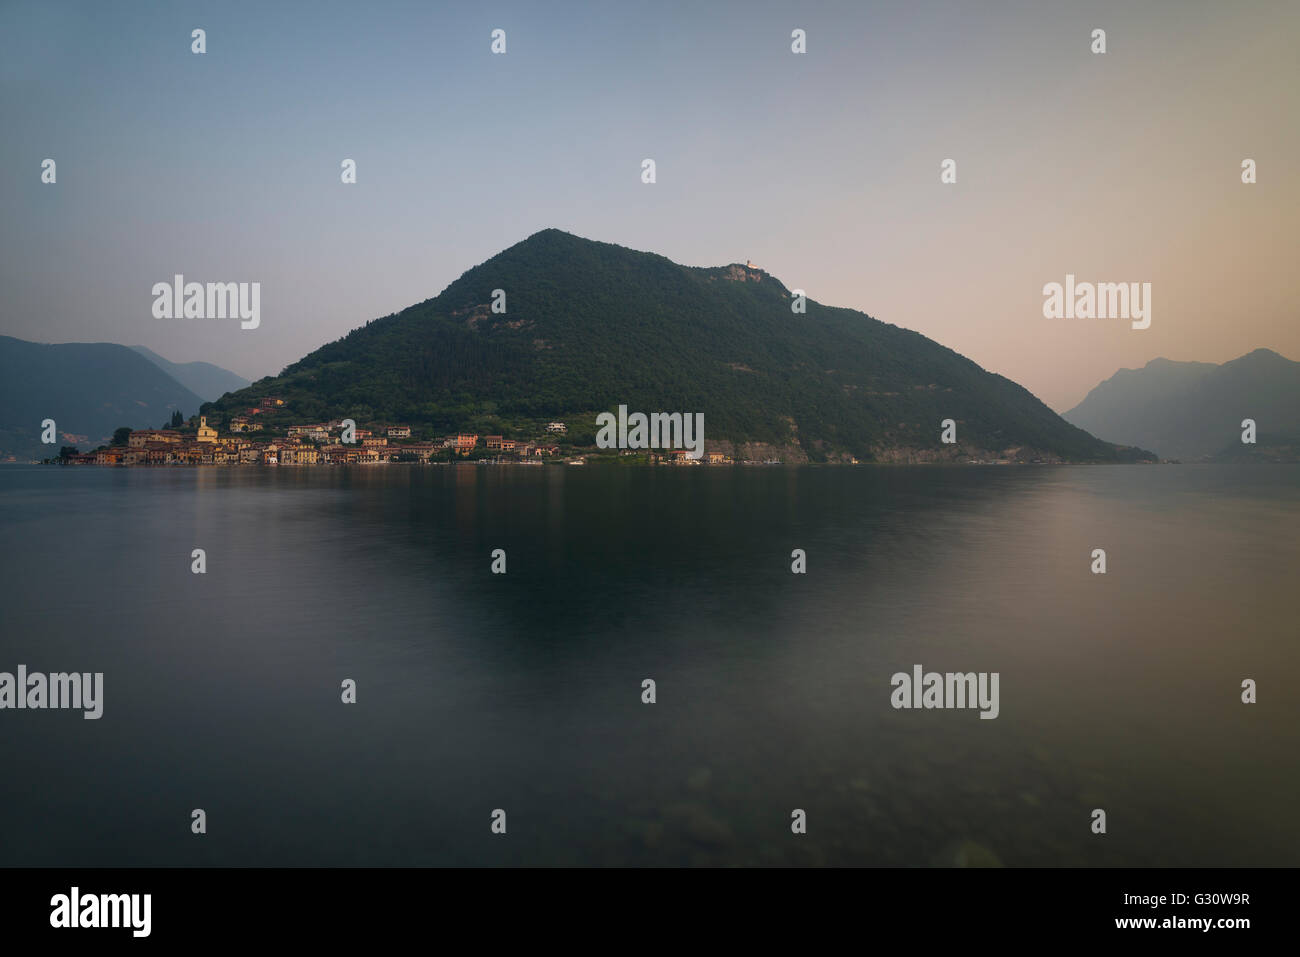 Panorama of scenery with Monte Isola island at Lake Iseo at dawn shortly before sunrise,Sulzano,Lombardy,Italy - Stock Image